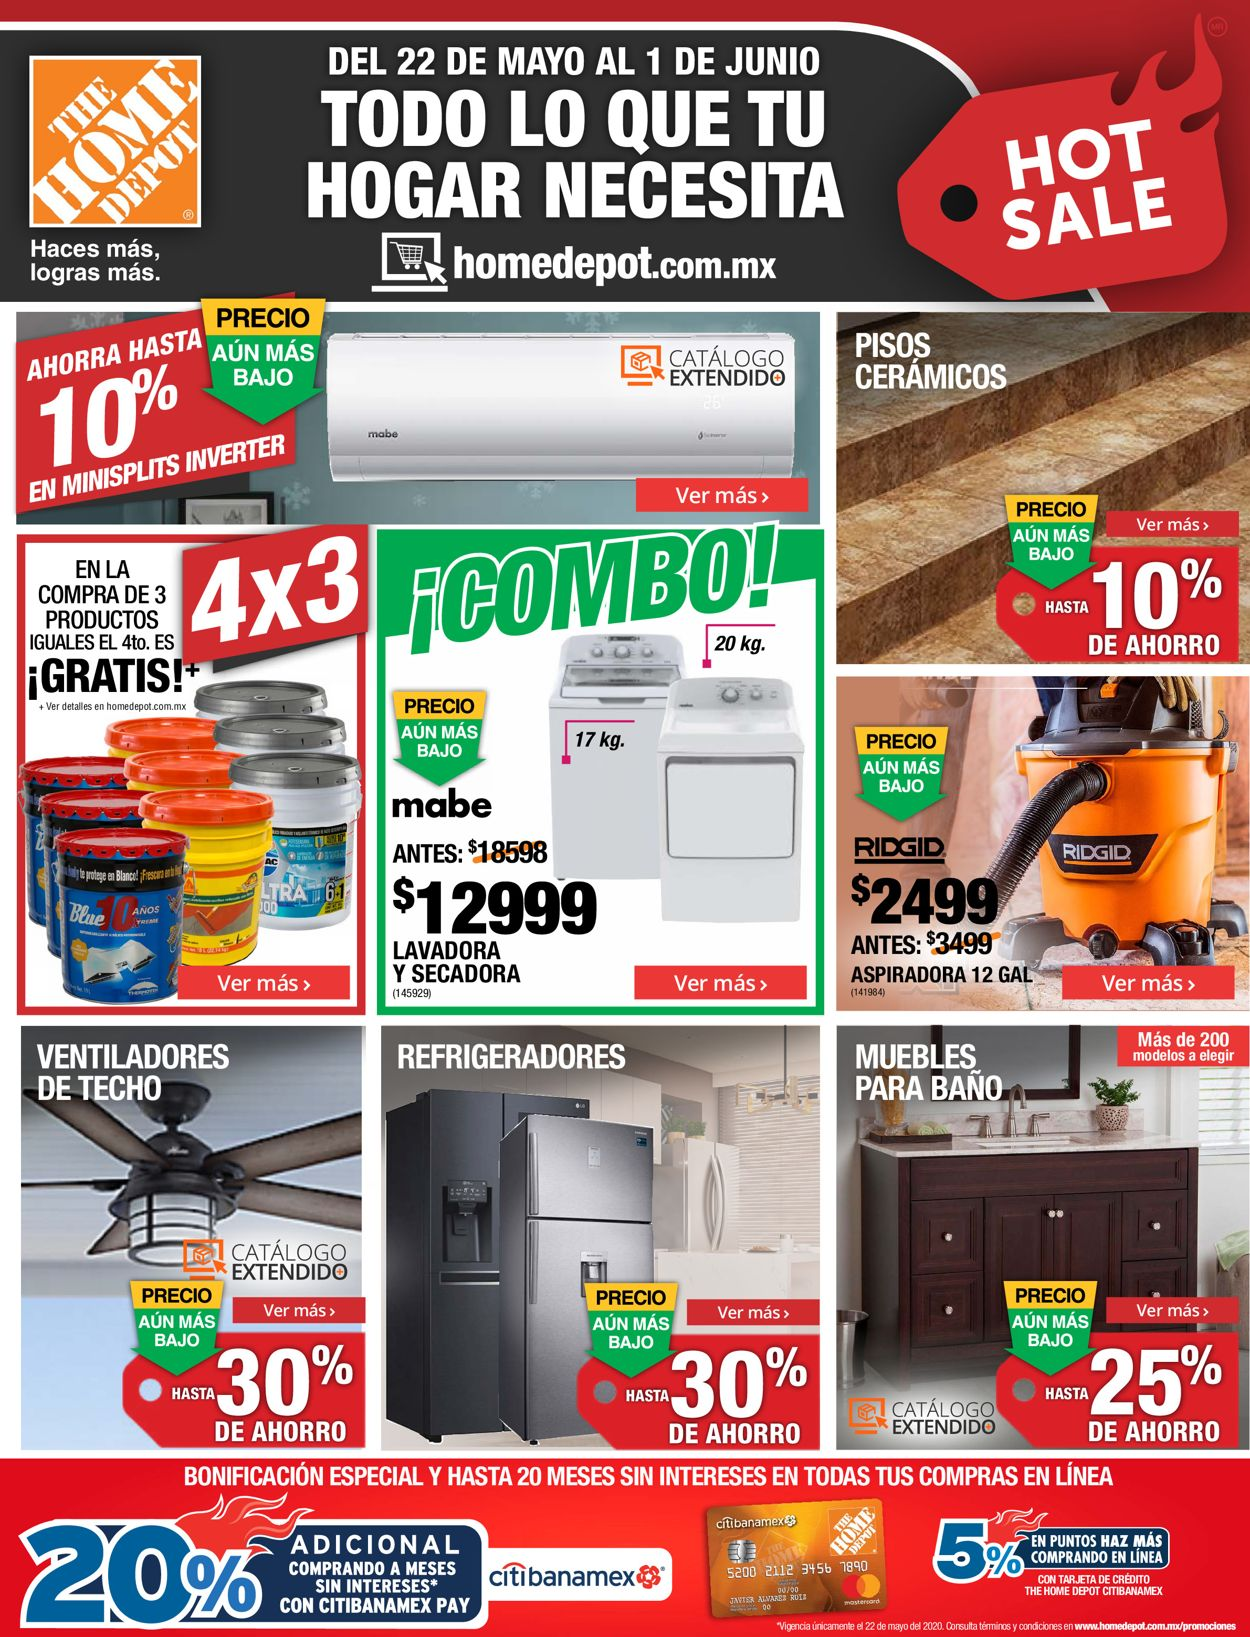 The Home Depot Folleto - 22.05-01.06.2020